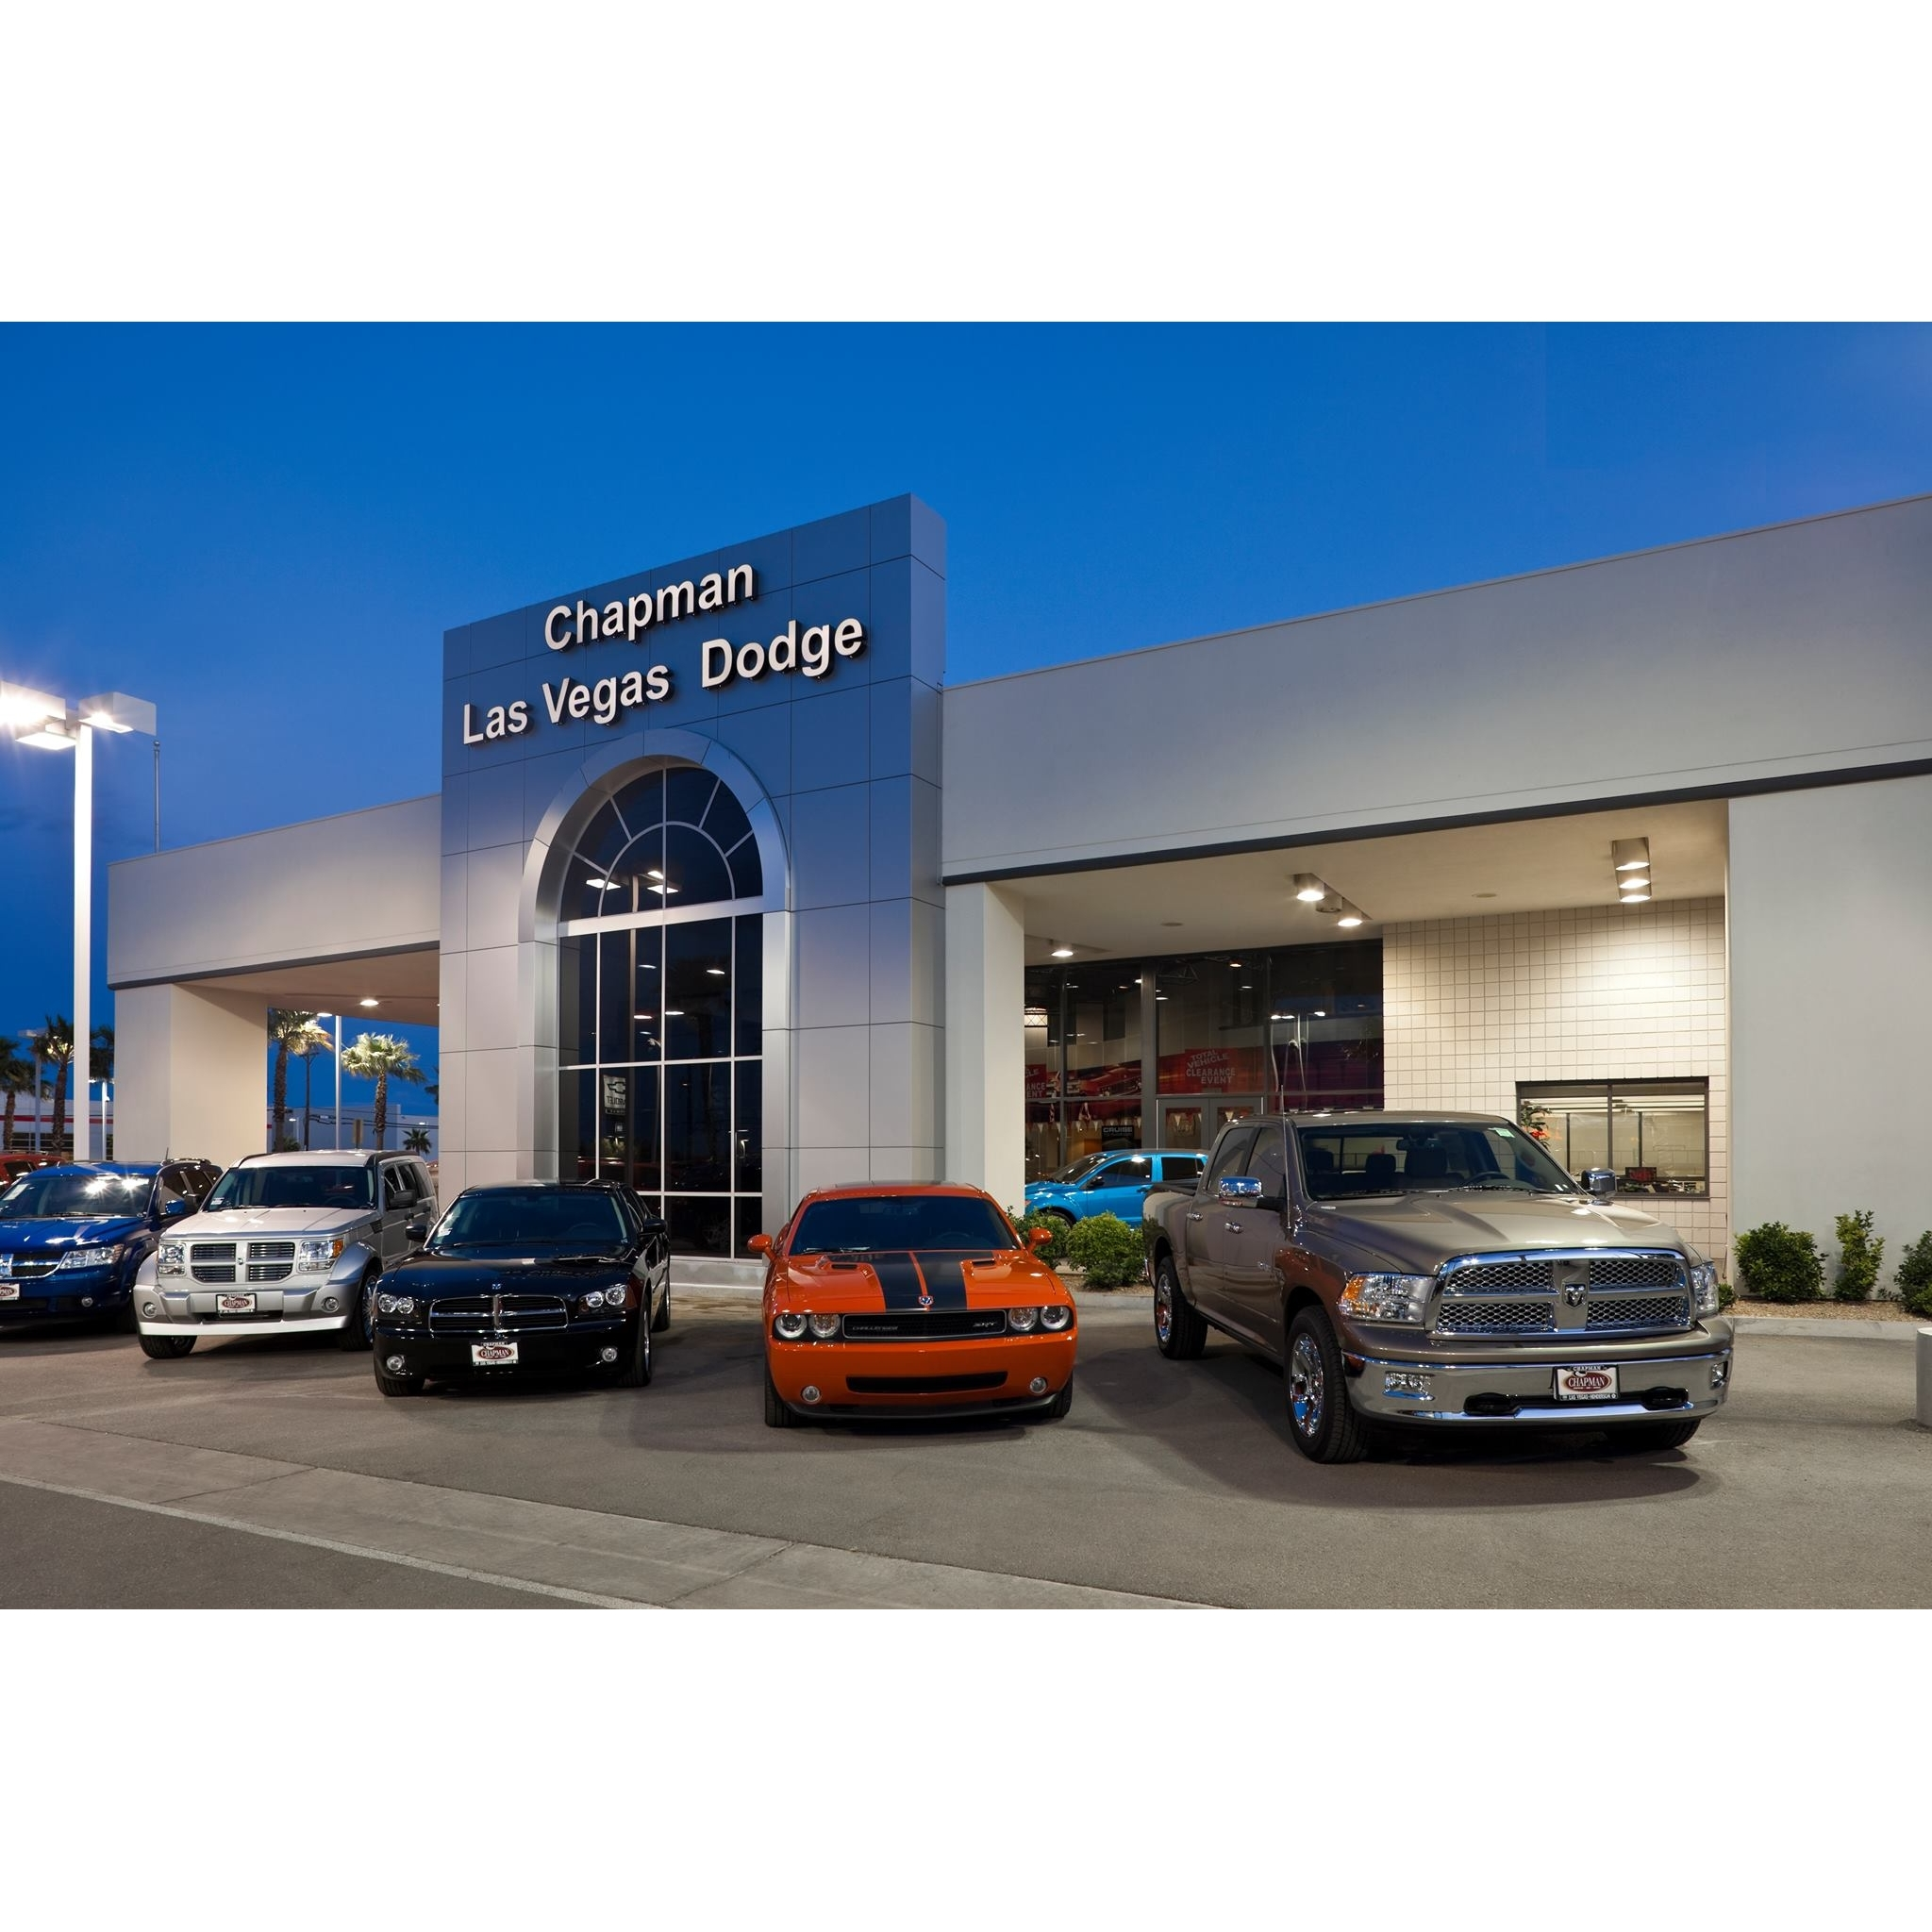 Autonation honda east las vegas honda dealer near me las for Honda dealer las vegas